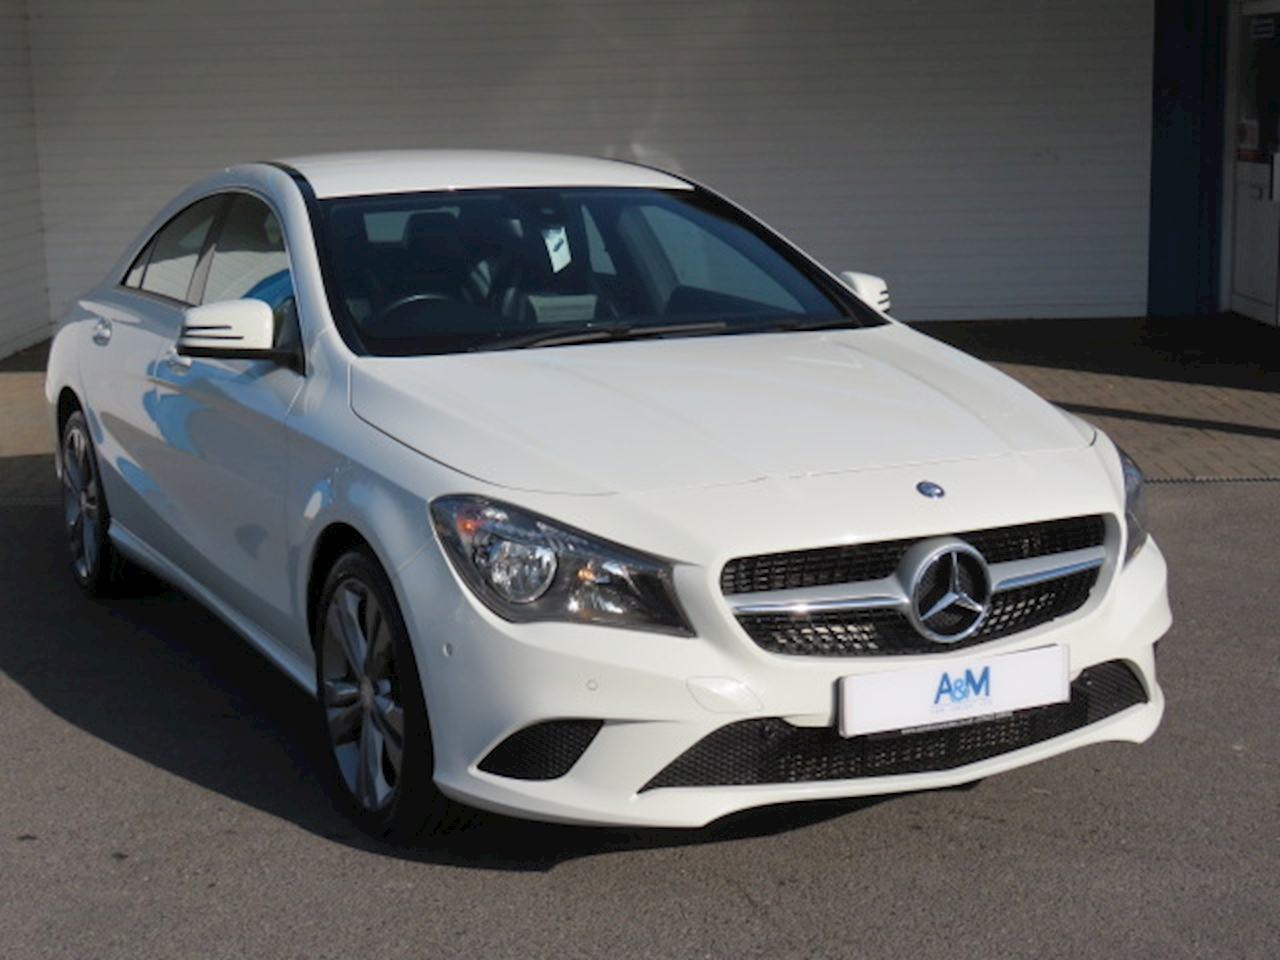 Mercedes-Benz CLA Class Sport 2.1 4dr Coupe Manual Diesel